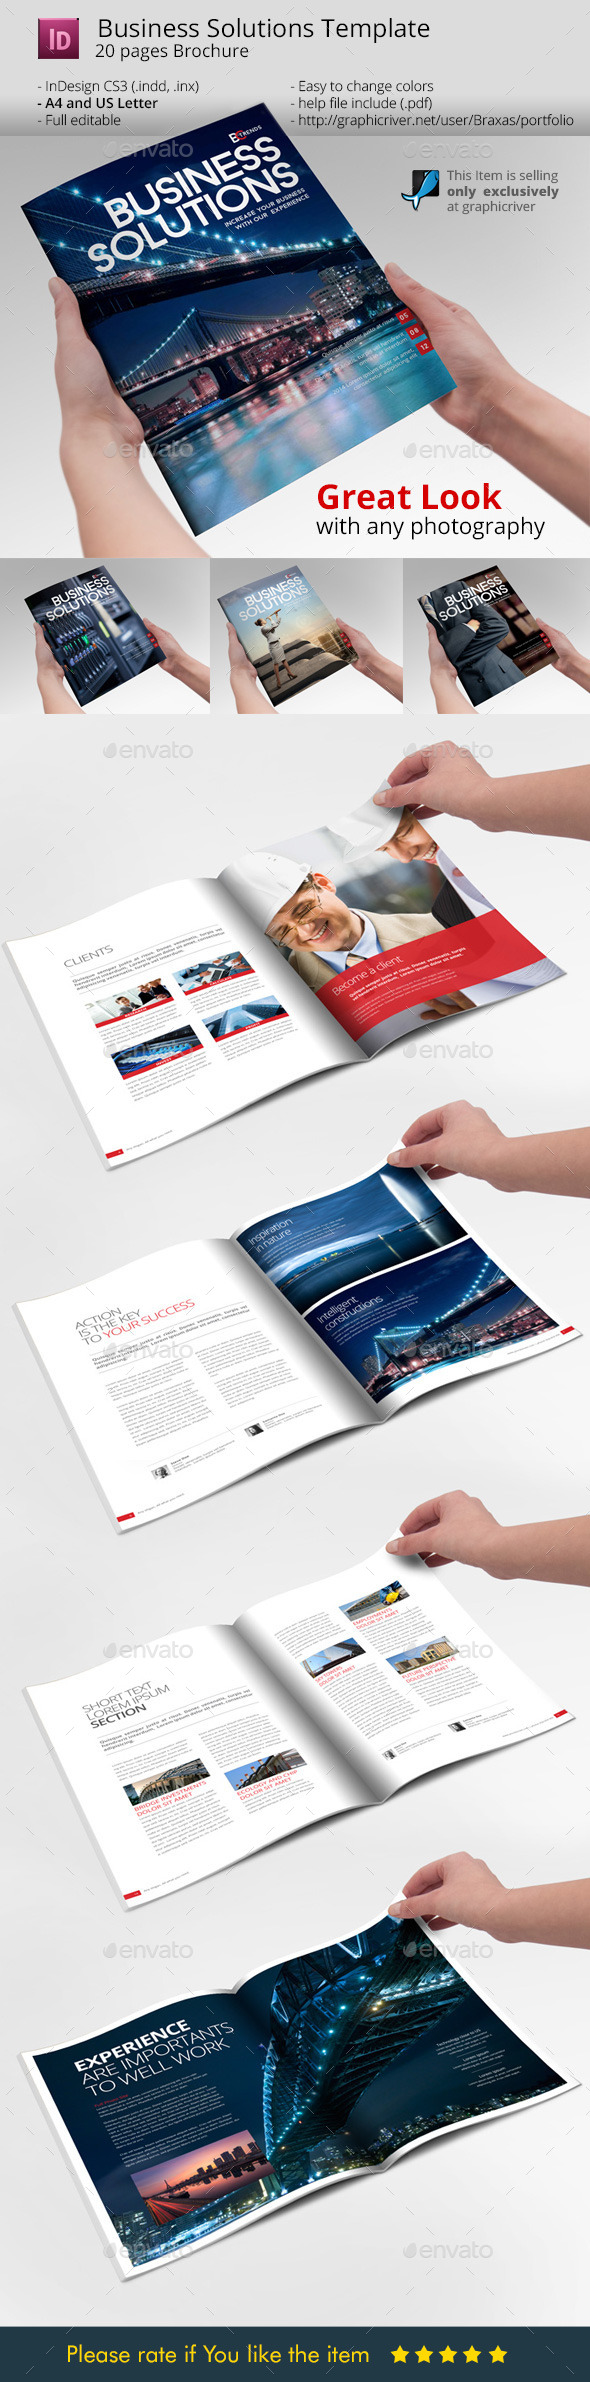 GraphicRiver Business Solution Template Brochure 9104876